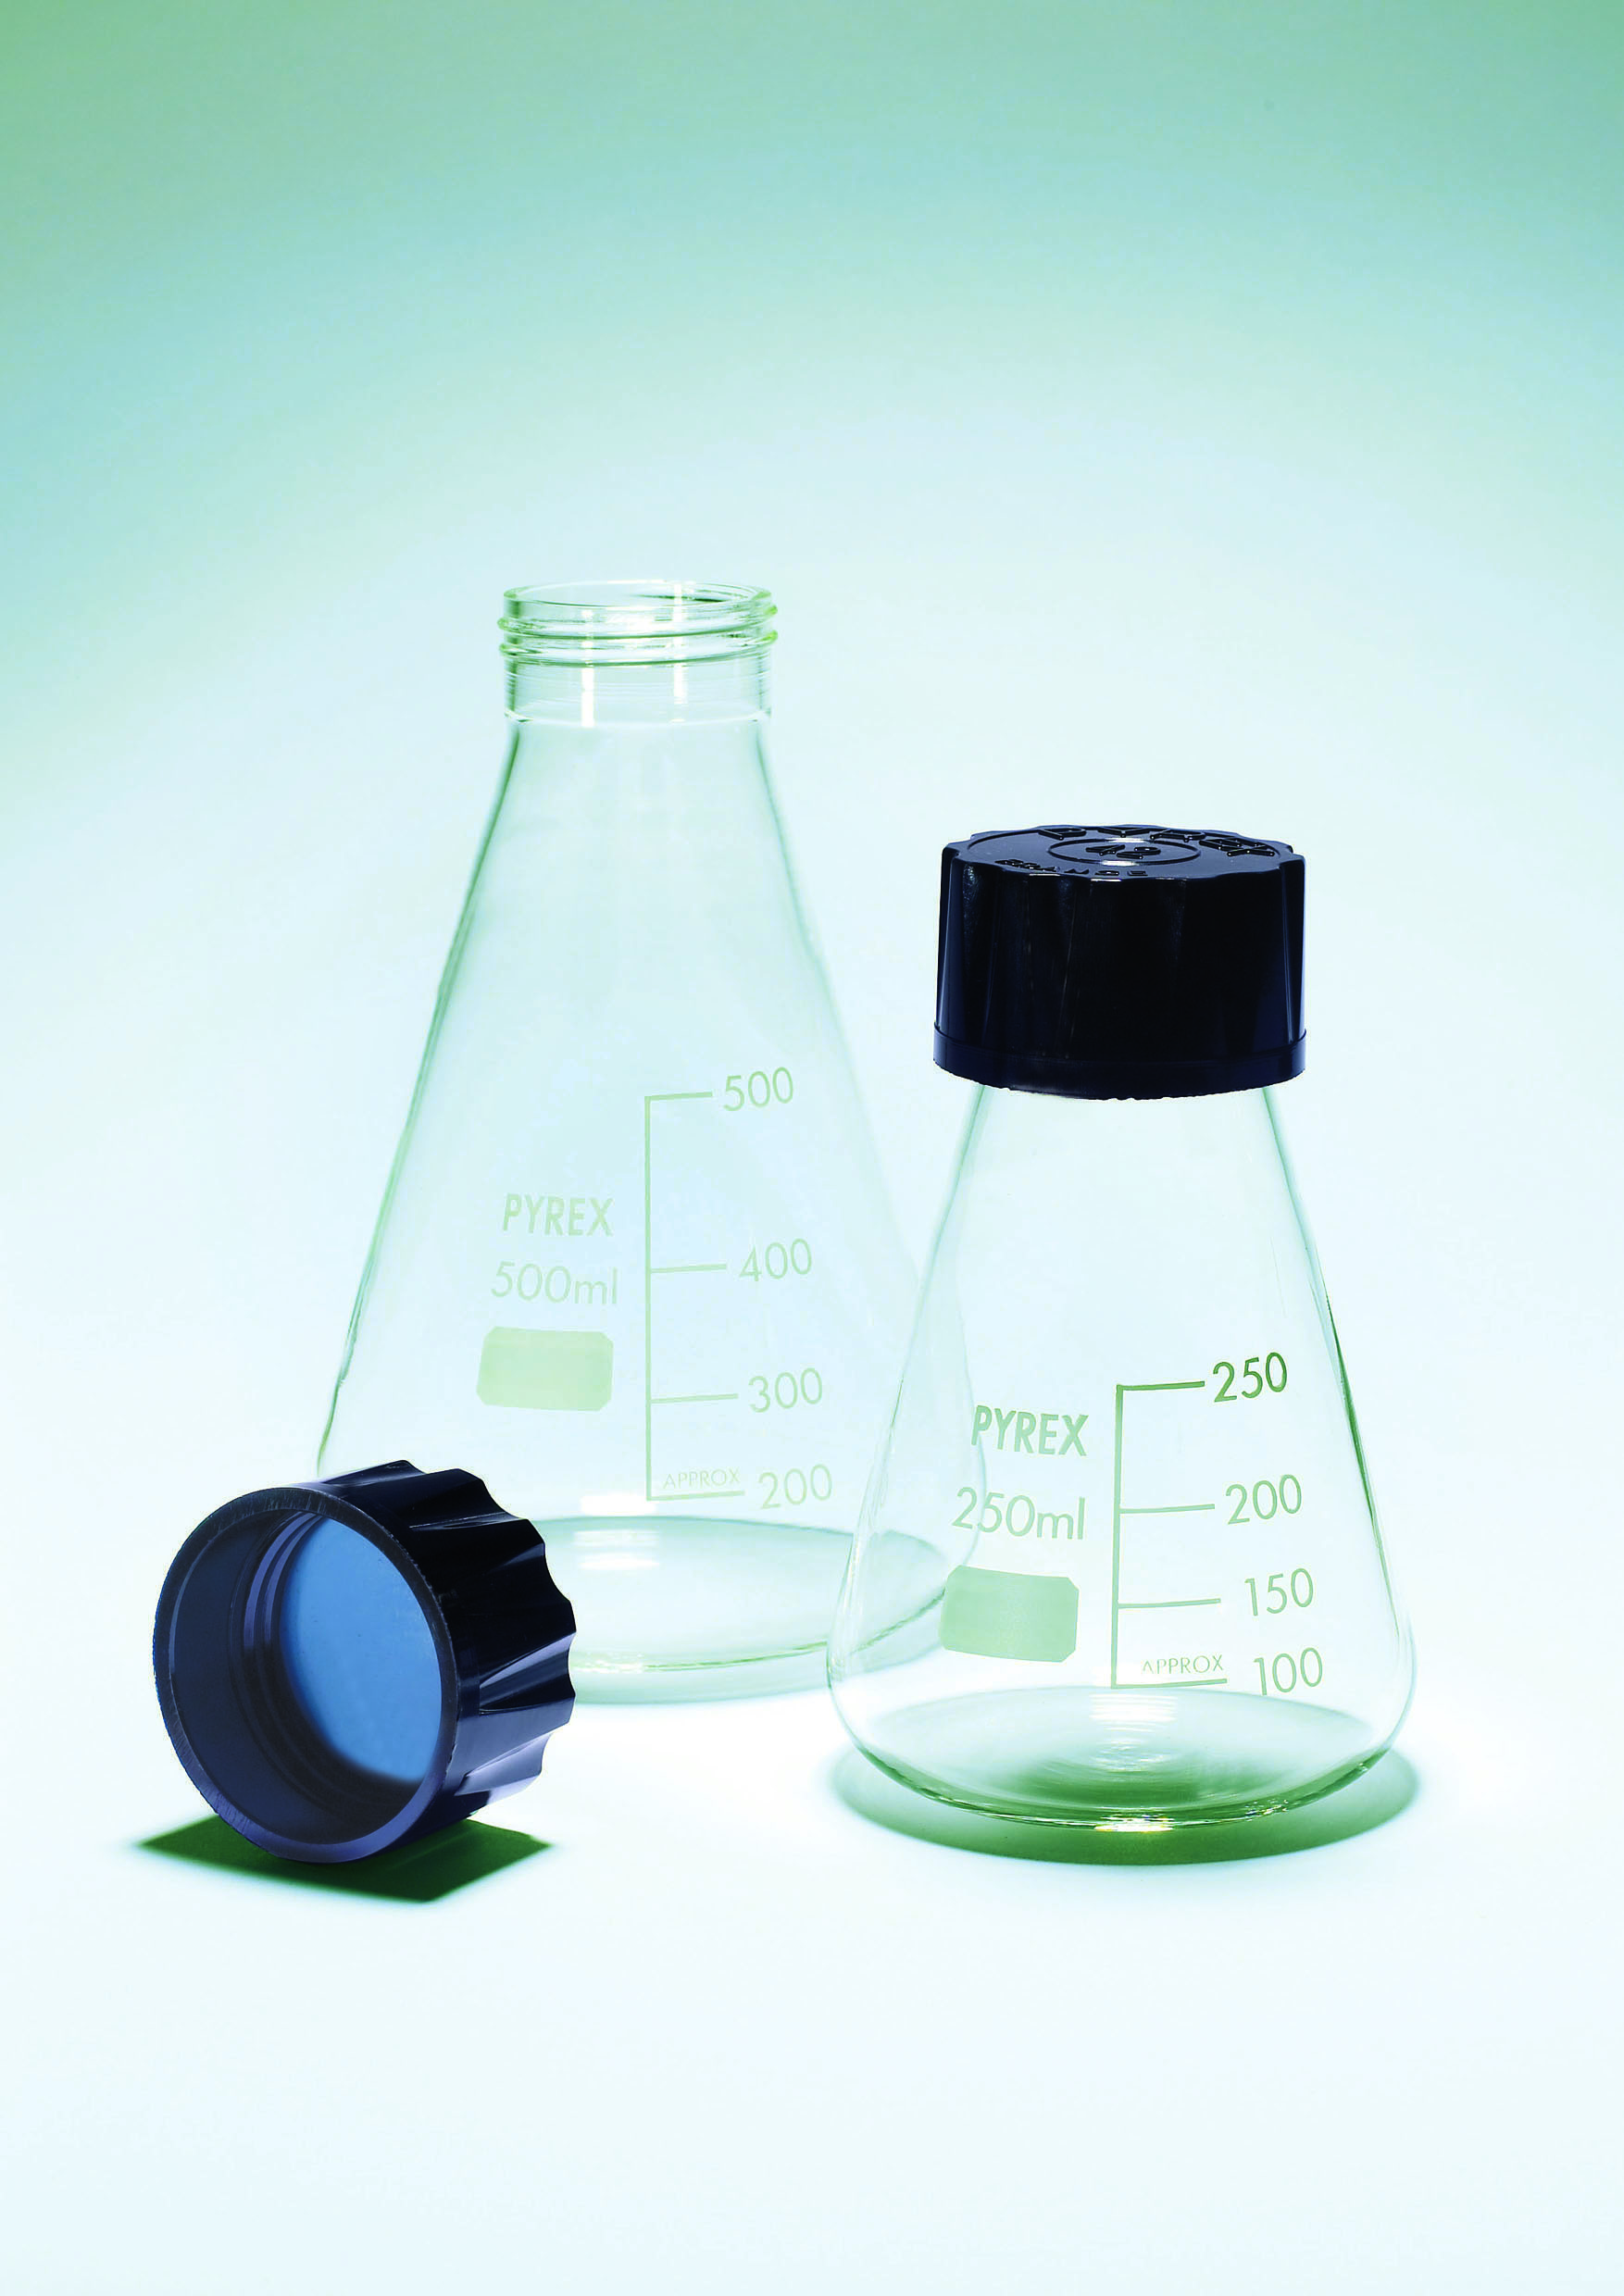 Erlenmeyer flasks with screwcap PYREX